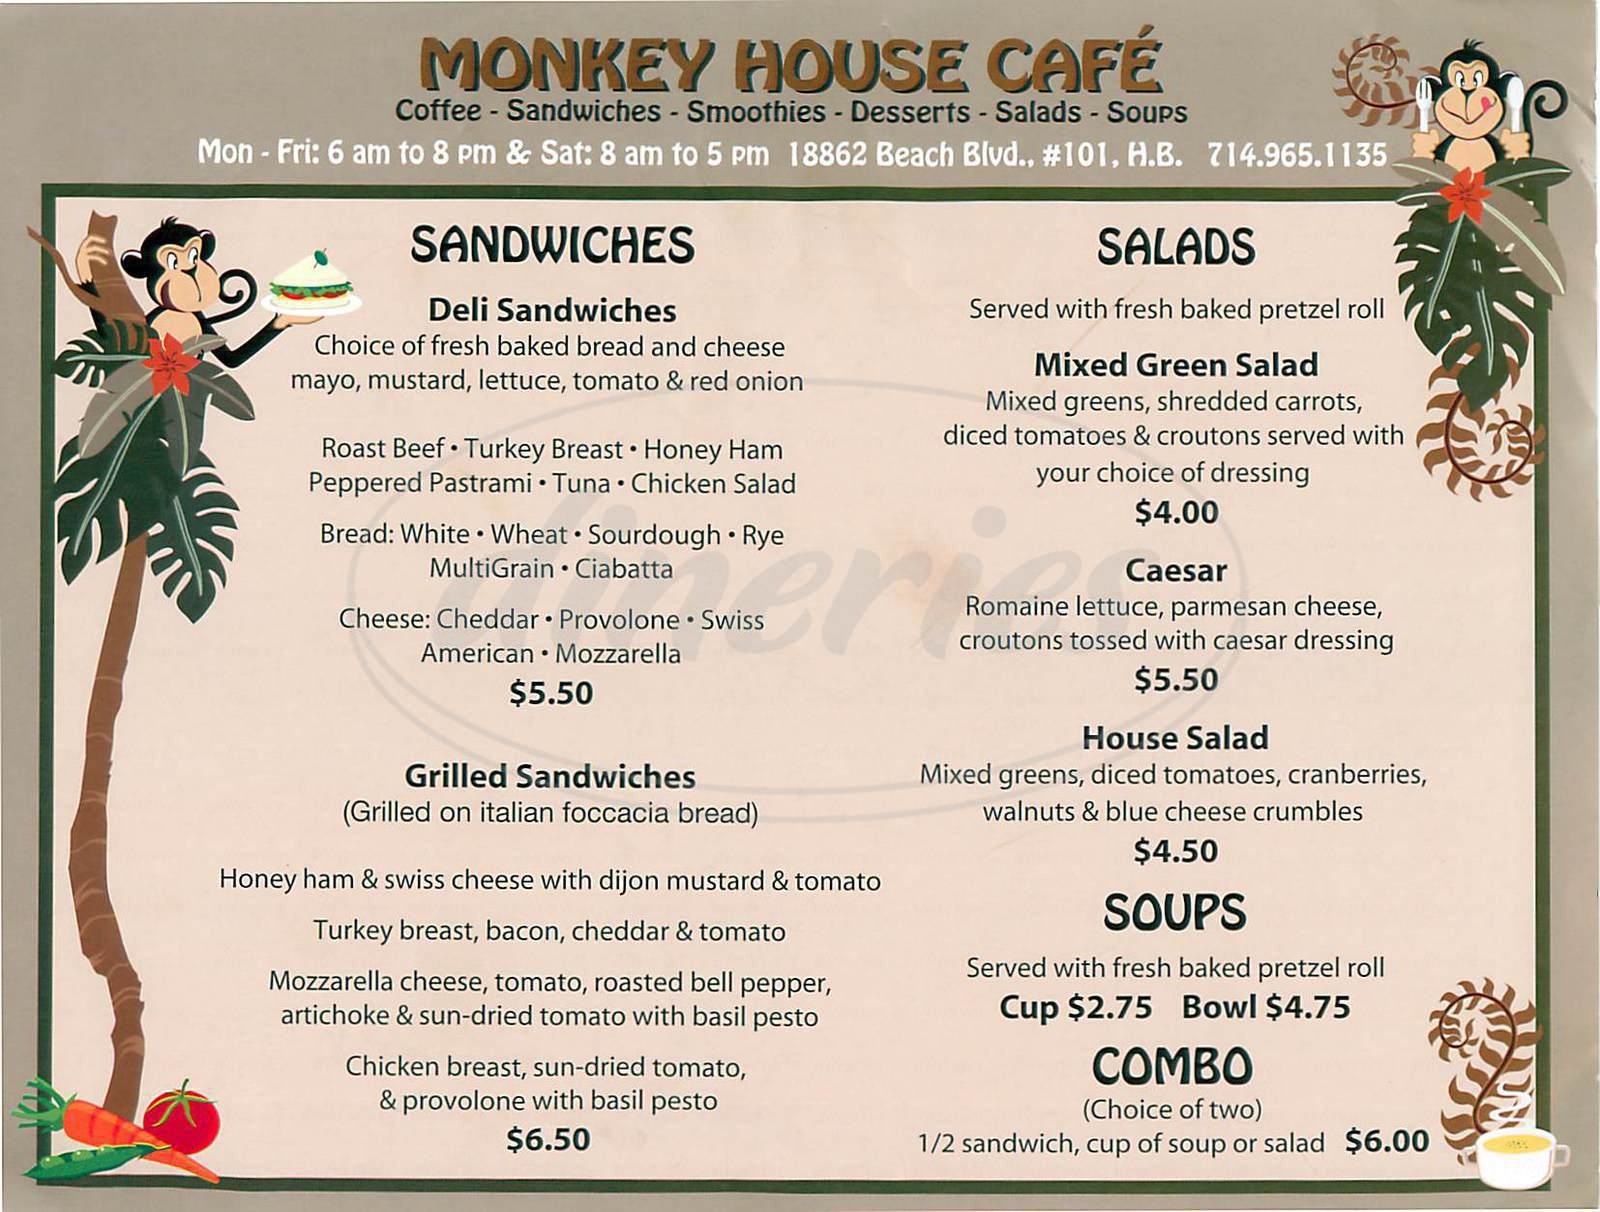 menu for Monkey House Café